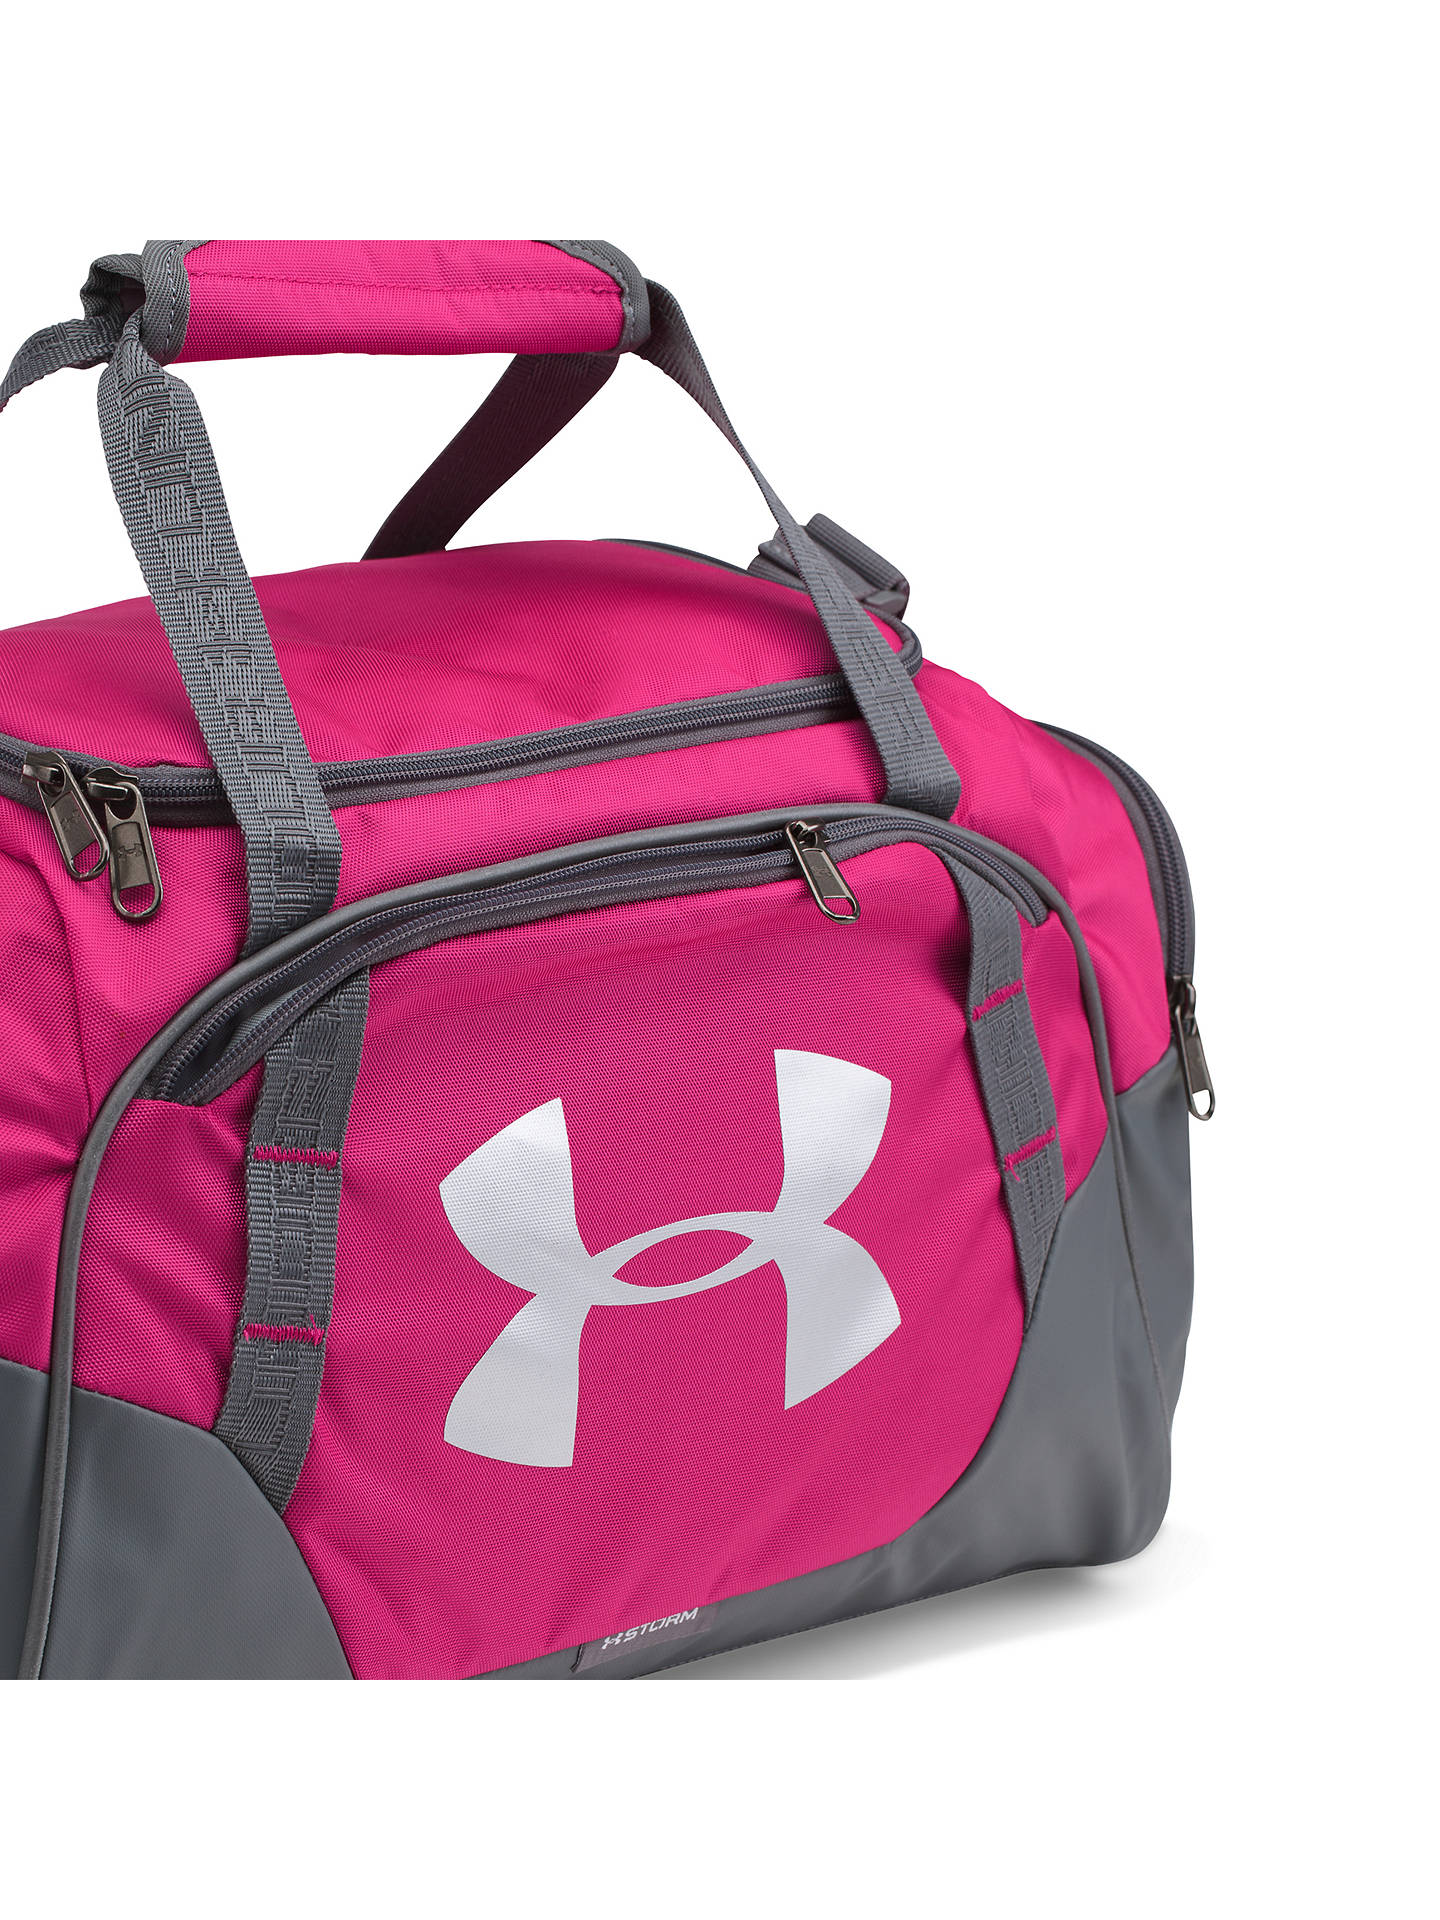 bab56df5fe1 ... Buy Under Armour Storm Undeniable 3.0 Extra Small Bag, Pink Online at  johnlewis.com ...